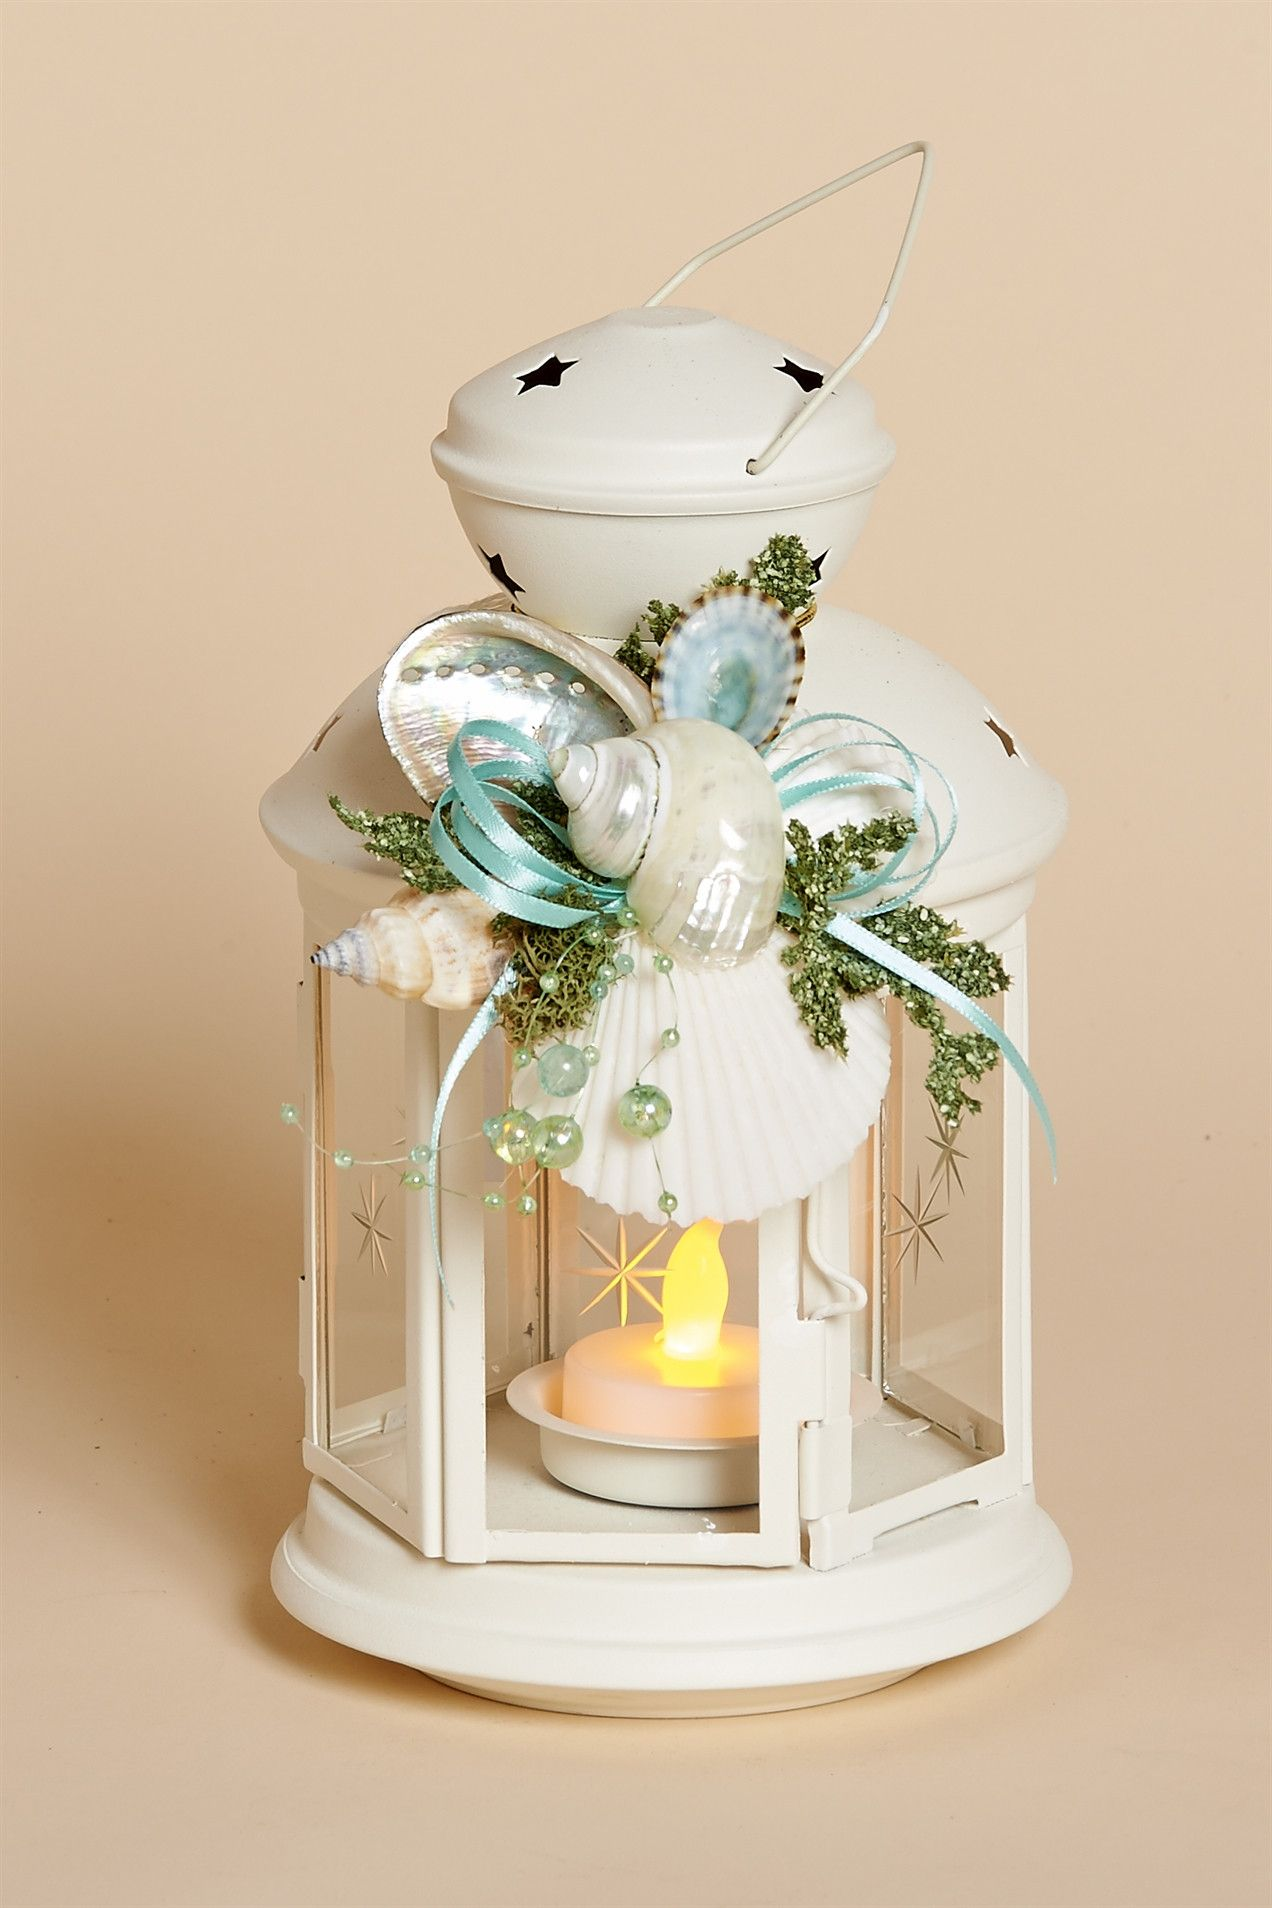 8 inch high White Metal Lantern with Removable Shell Collar, Aqua Bow and Battery Tea Light